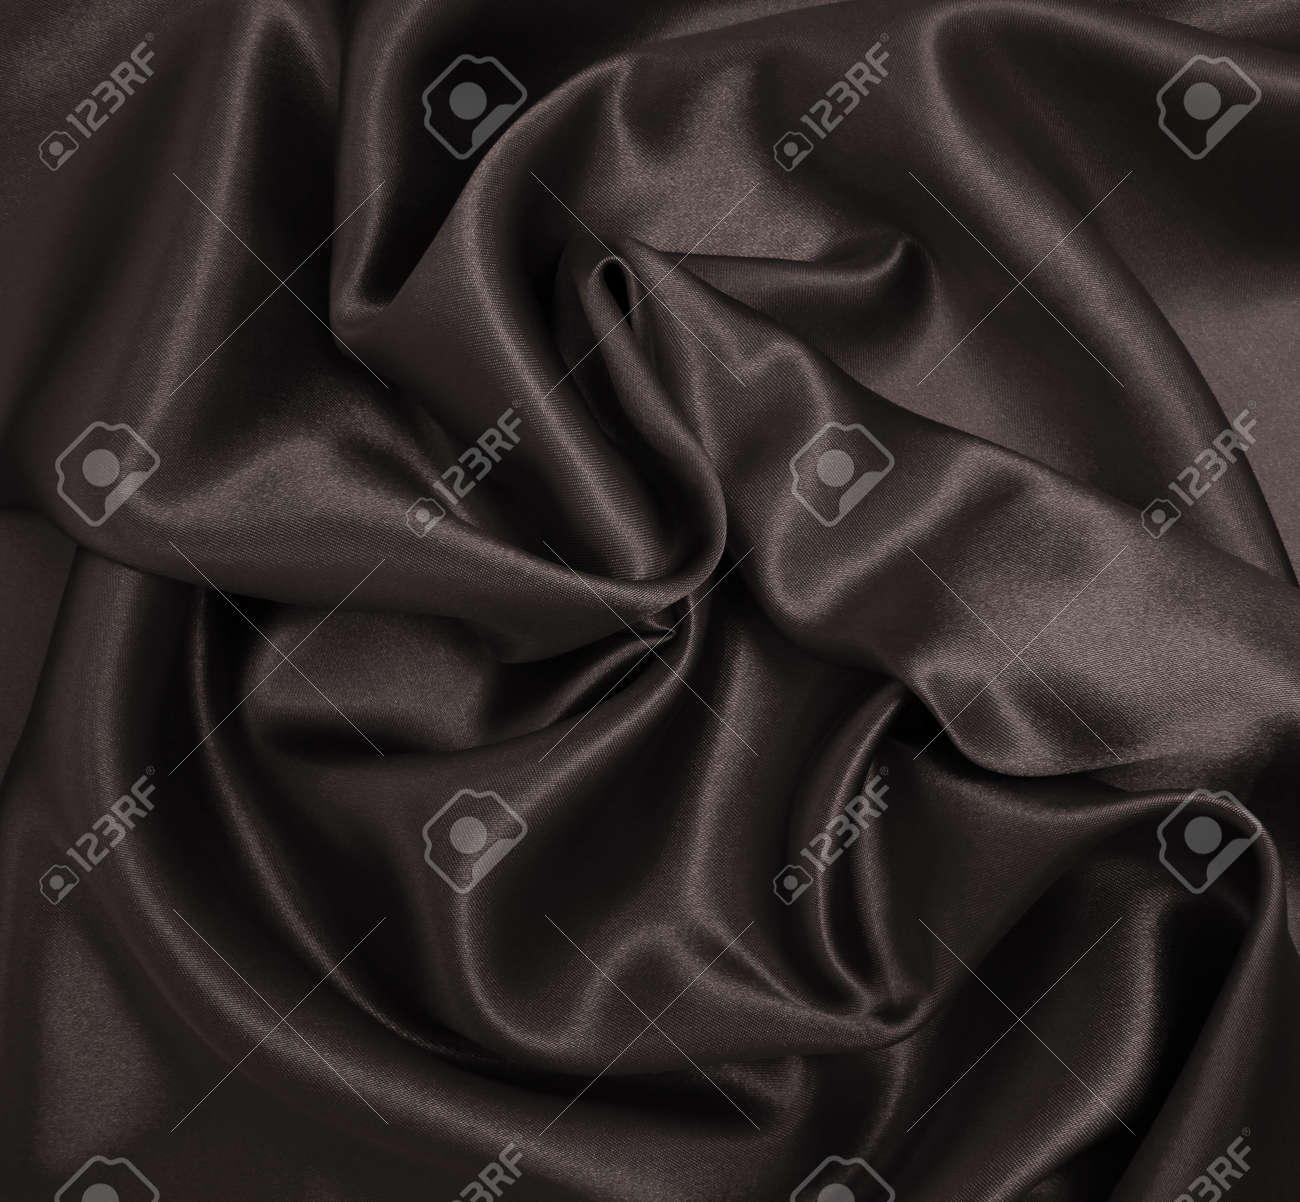 Smooth elegant brown silk or satin texture can use as abstract background. Luxurious background design. In Sepia toned. Retro style - 150863526